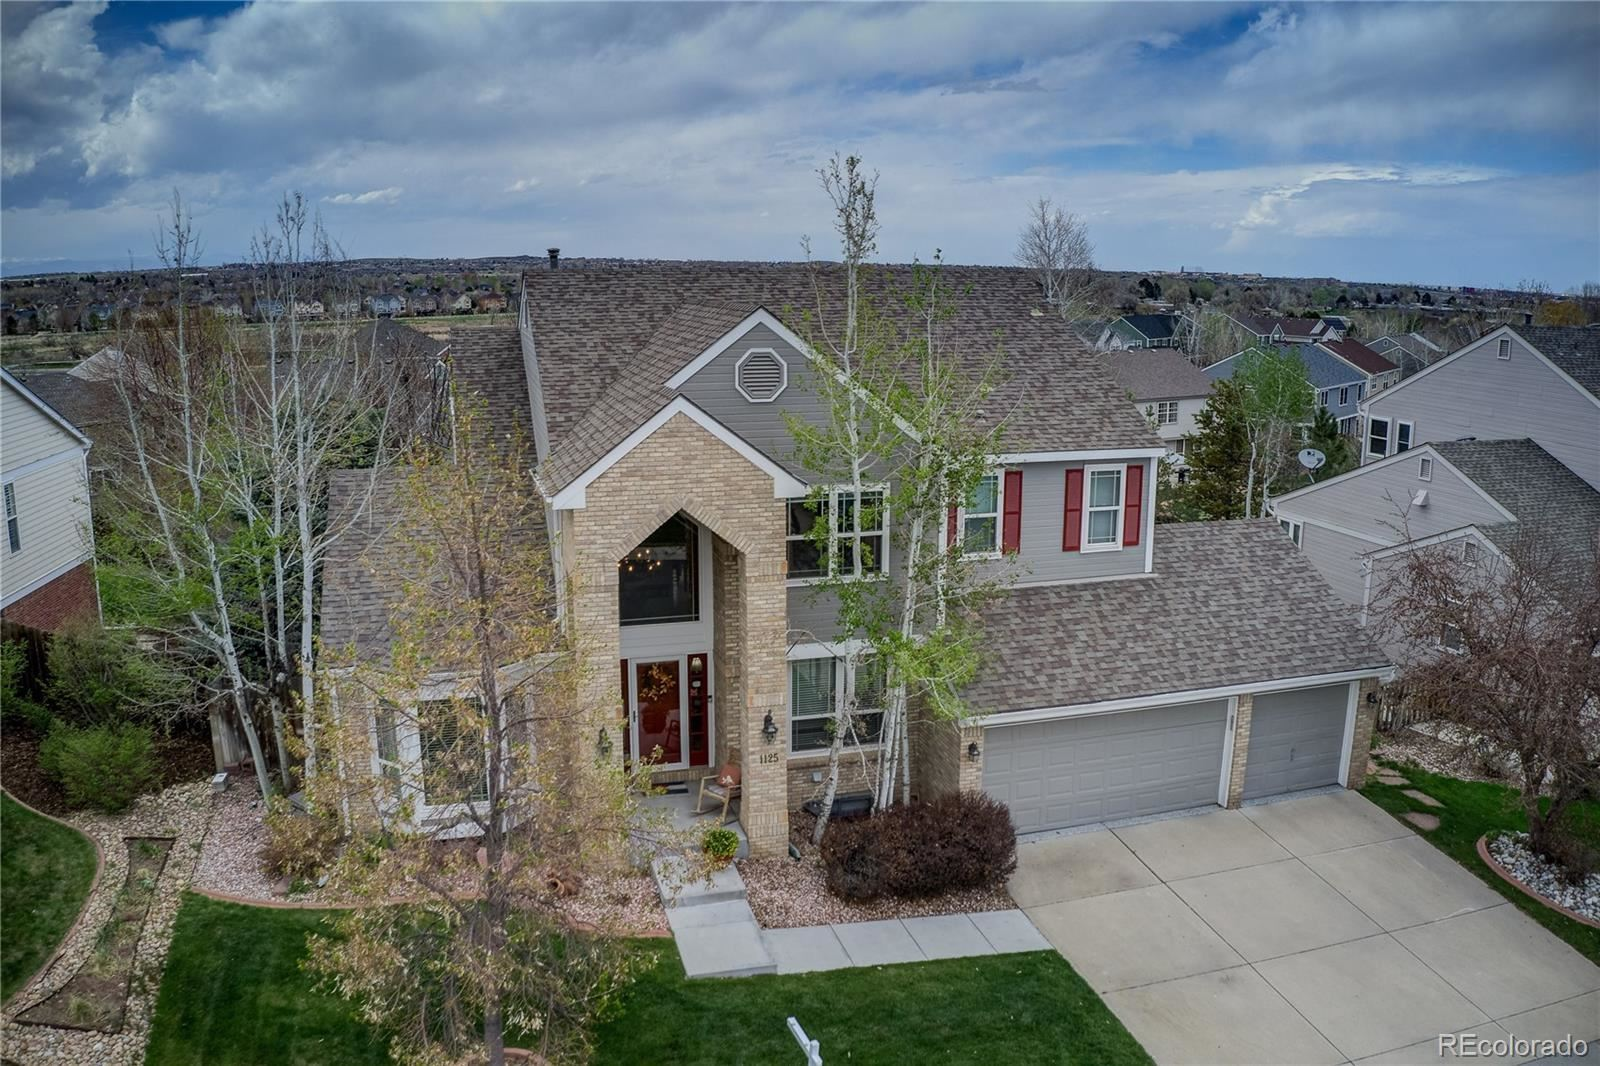 1125 W 125th Drive, Westminster, CO 80234 - #: 6661039